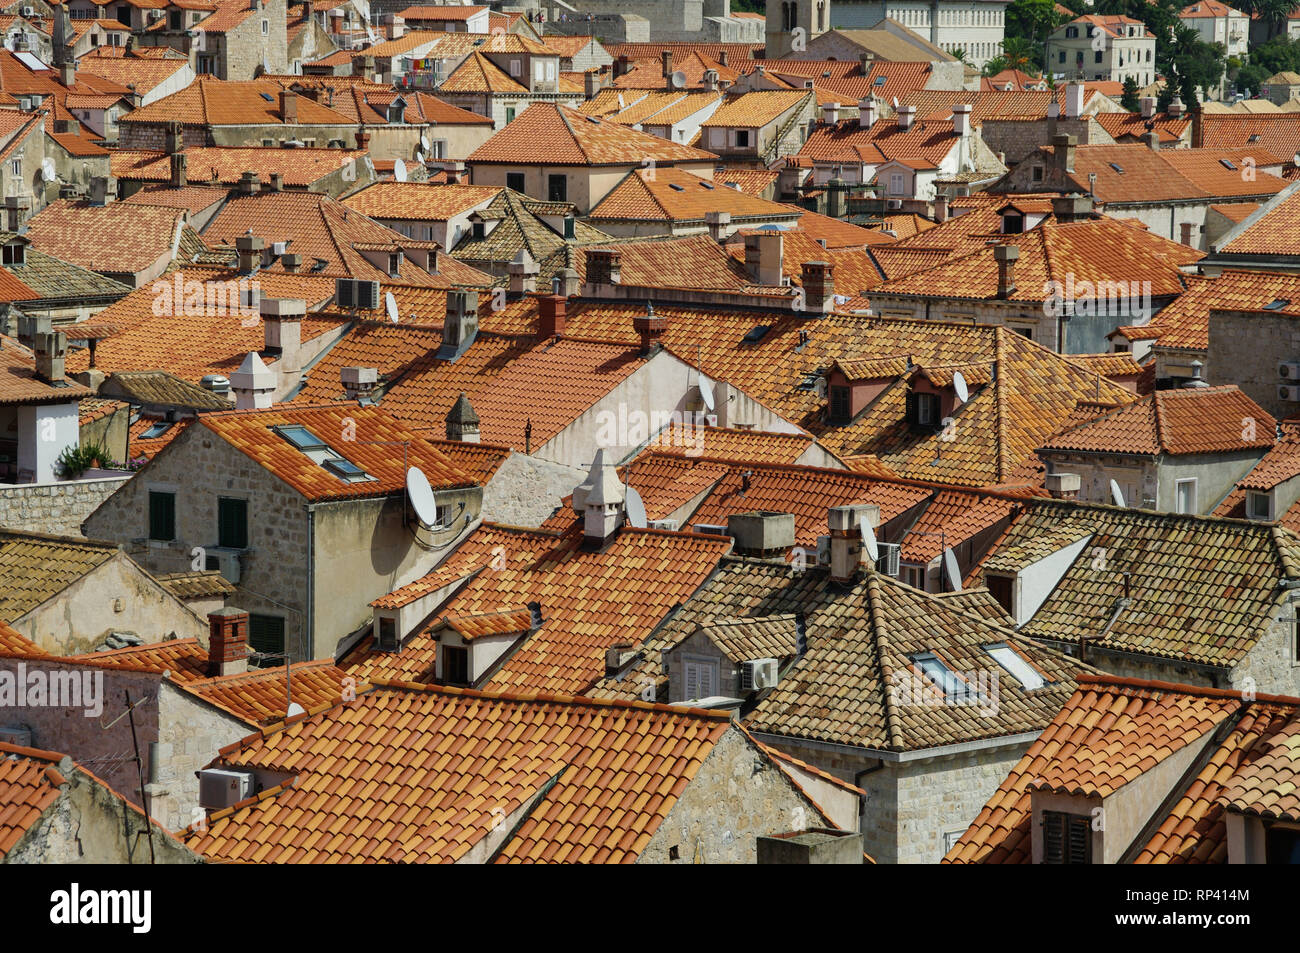 Roofs of Dubrovnic Stock Photo